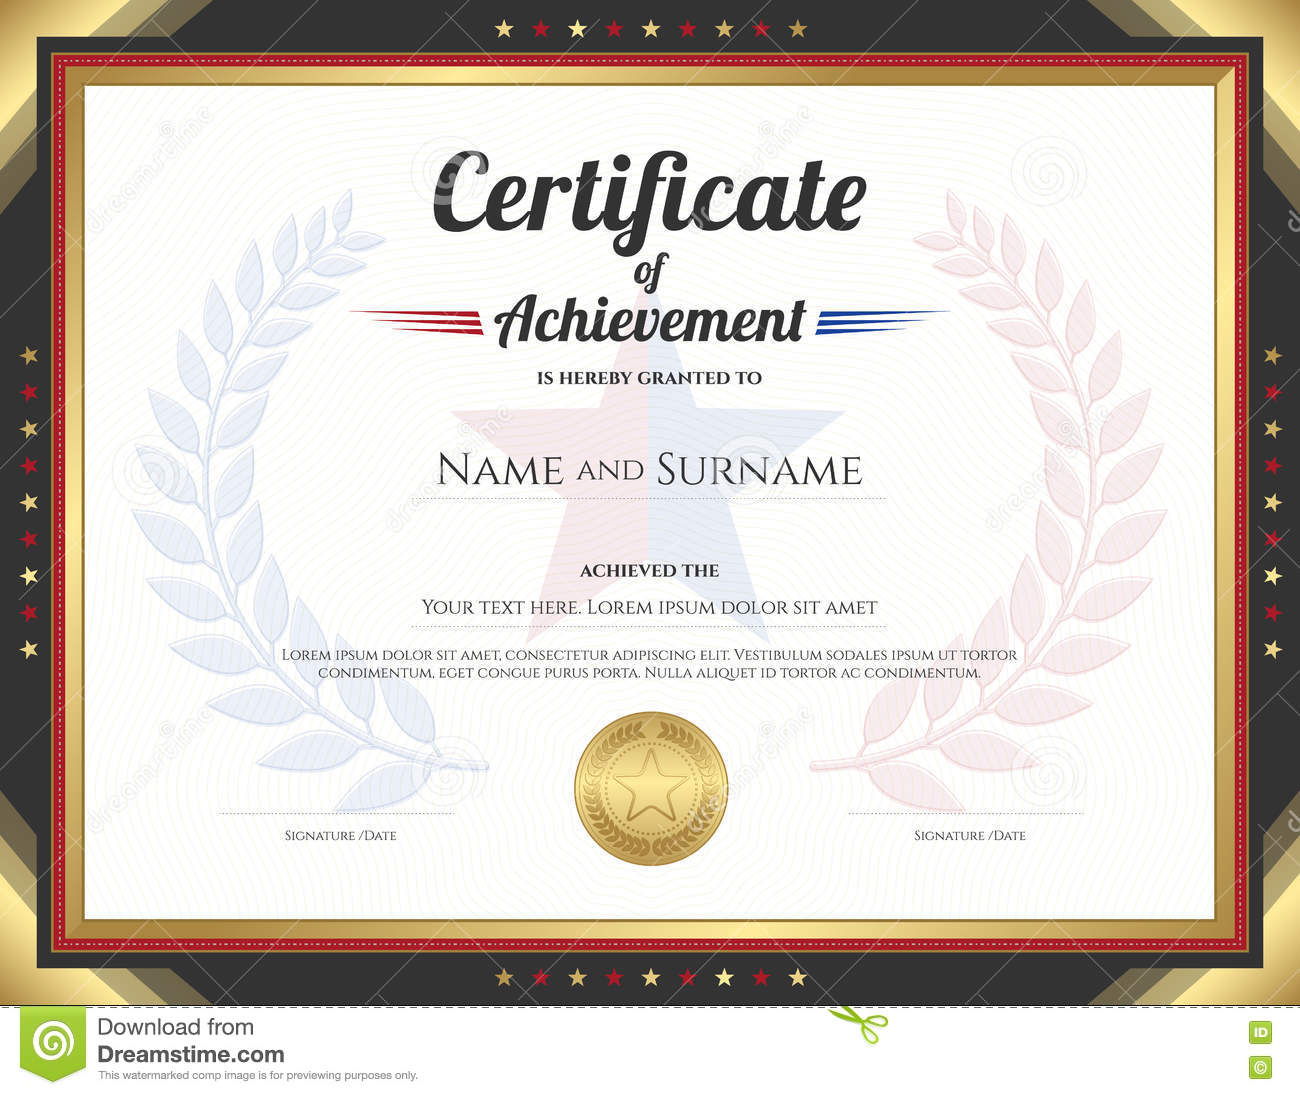 Certificate of merit template download free download certificate.